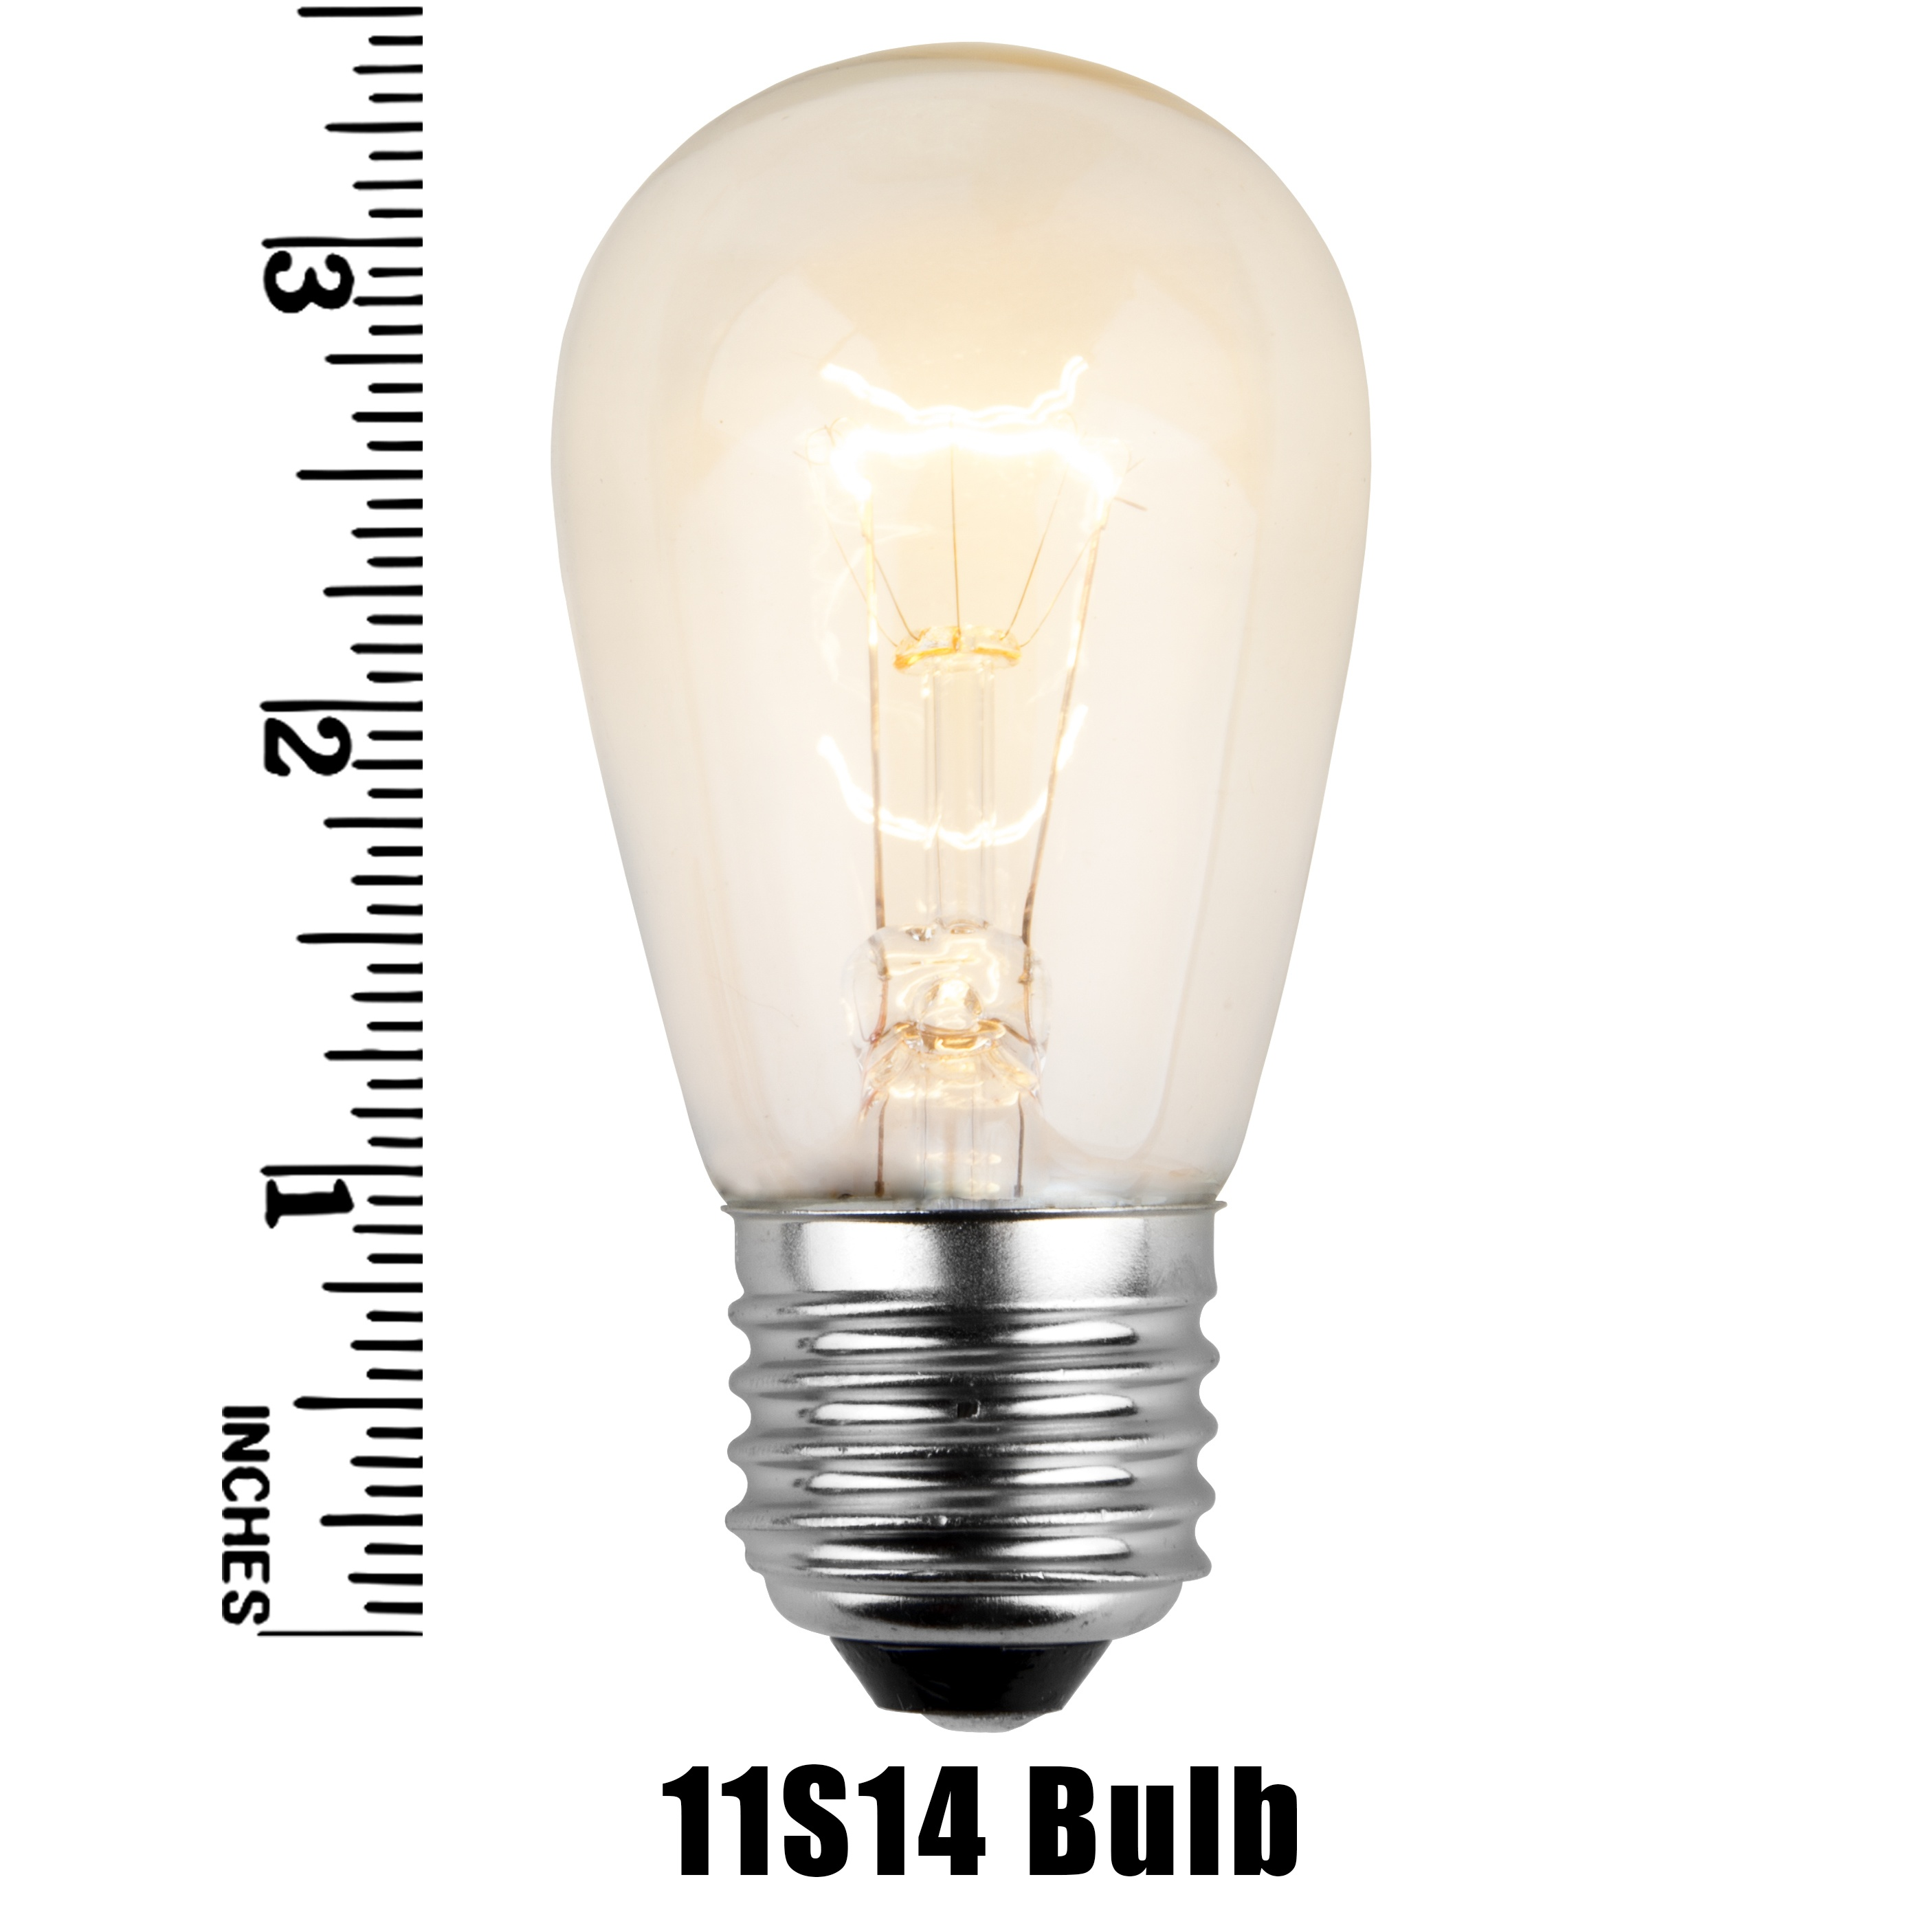 11S14 Incandescent Clear Sign Lamp Measurement